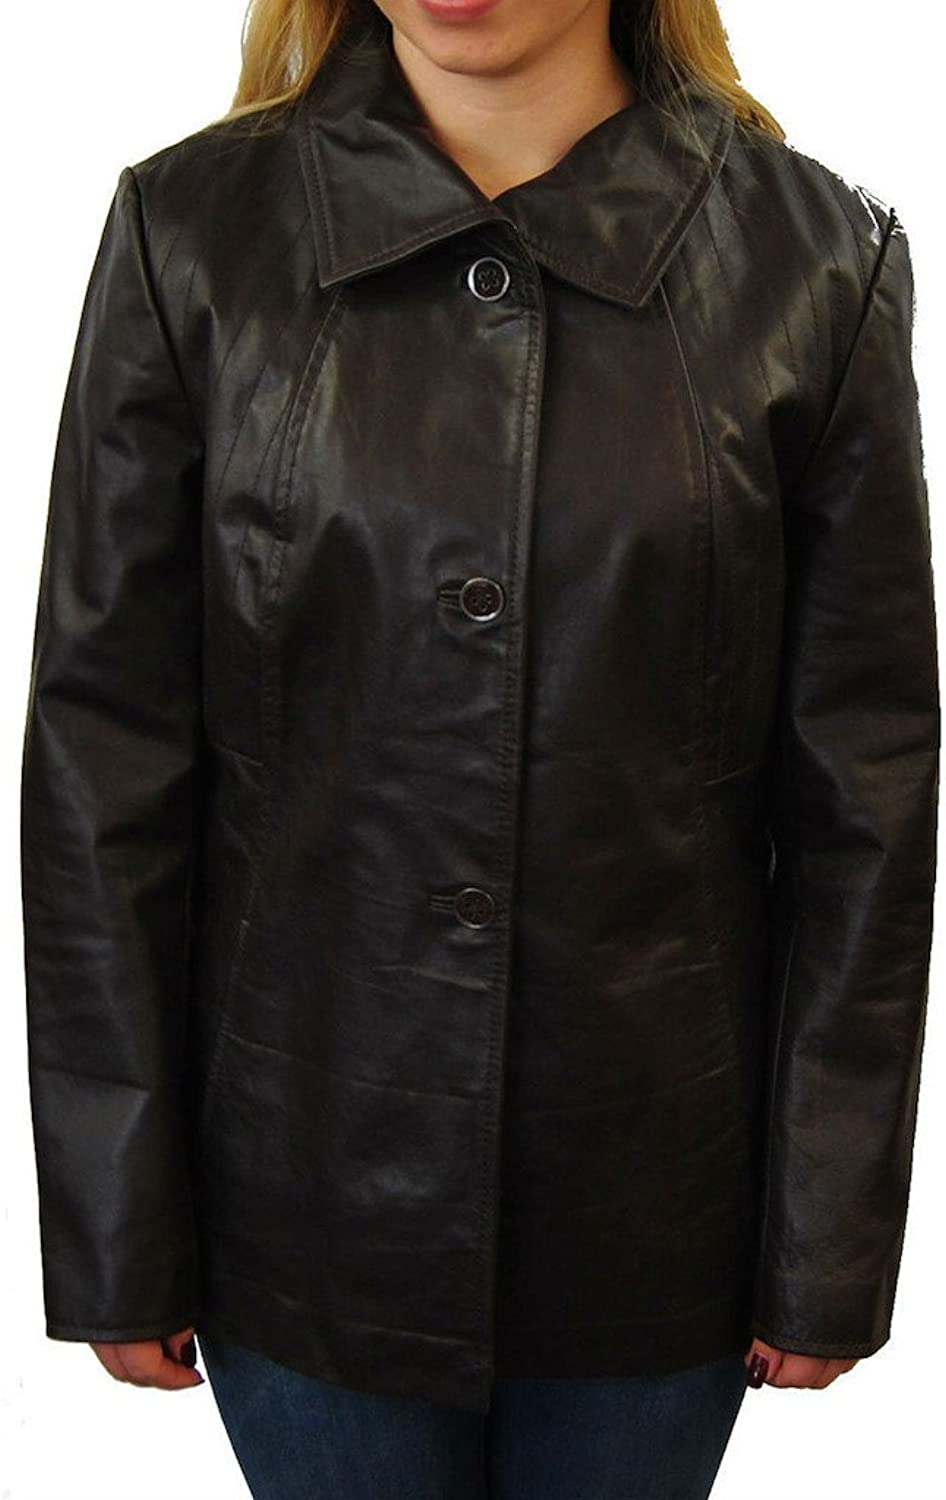 Fadcloset Womens Brown Leather Coat